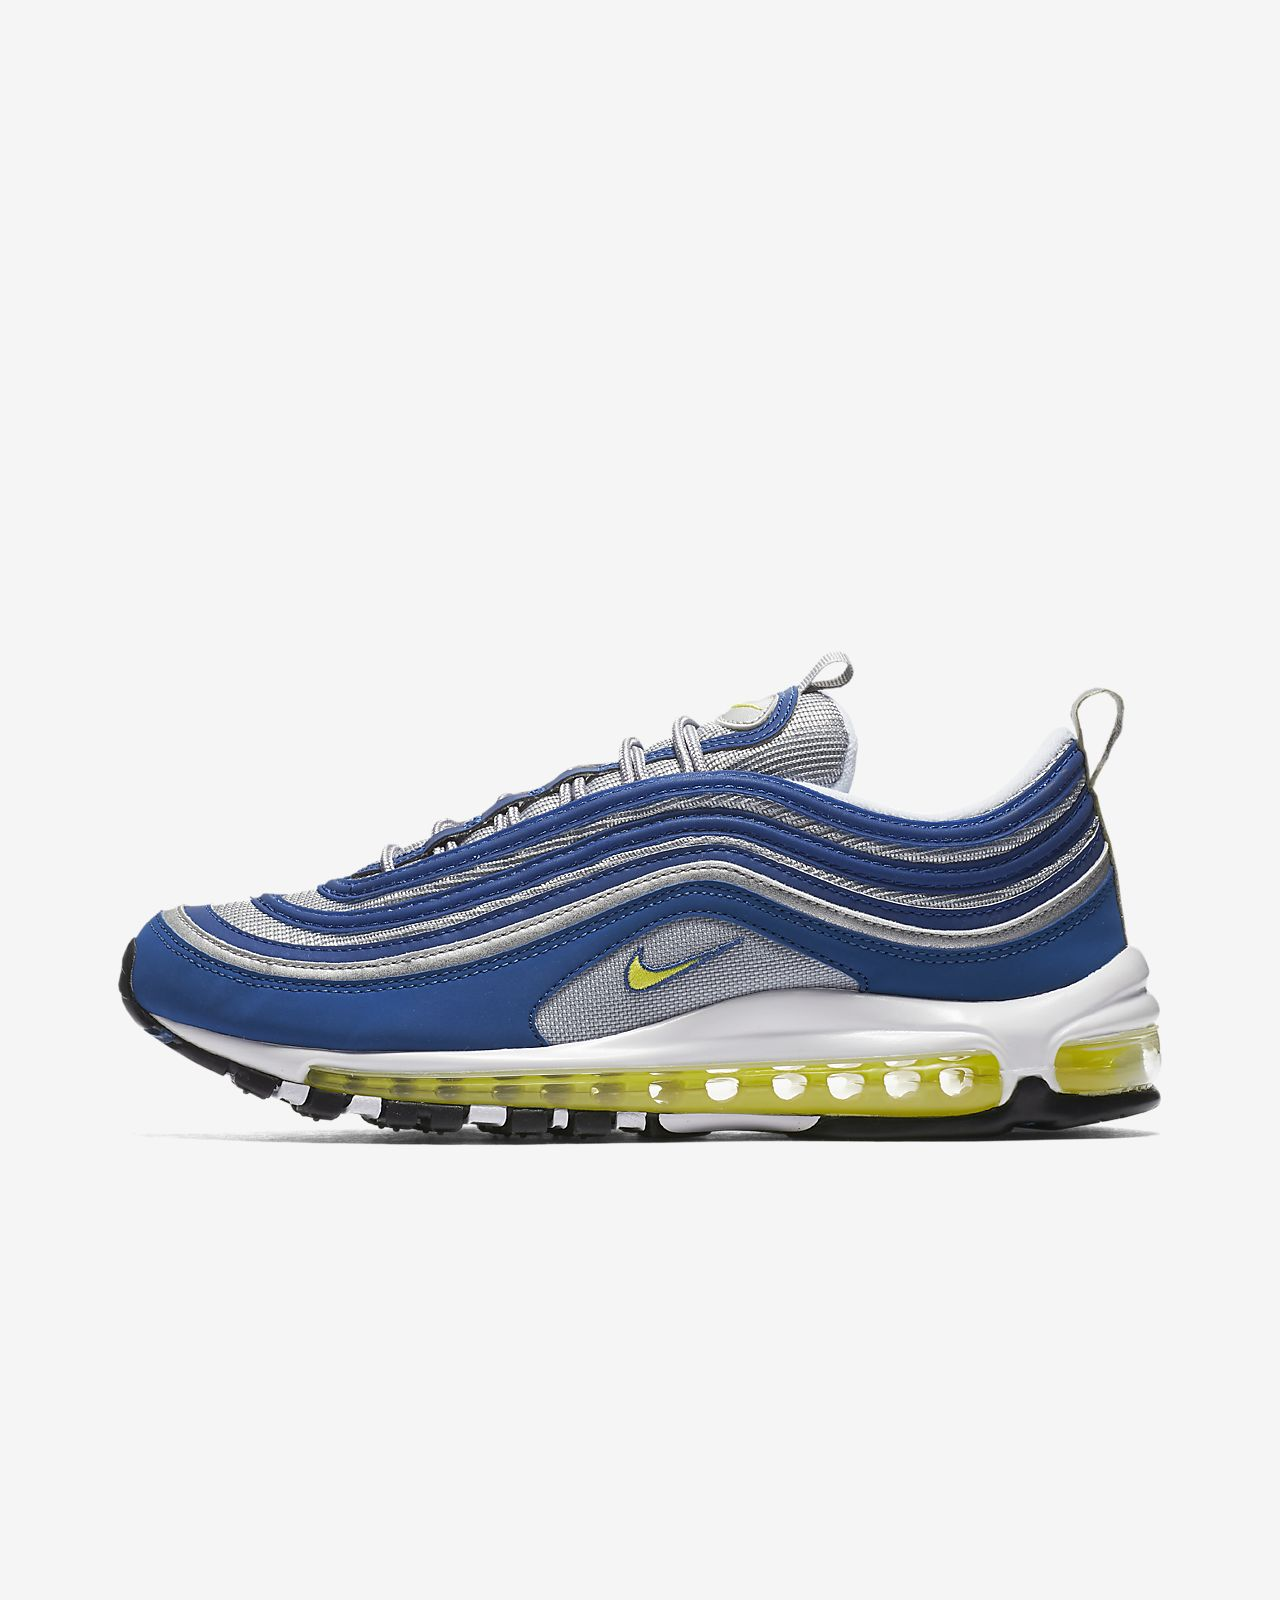 ... Chaussure Nike Air Max 97 pour Homme